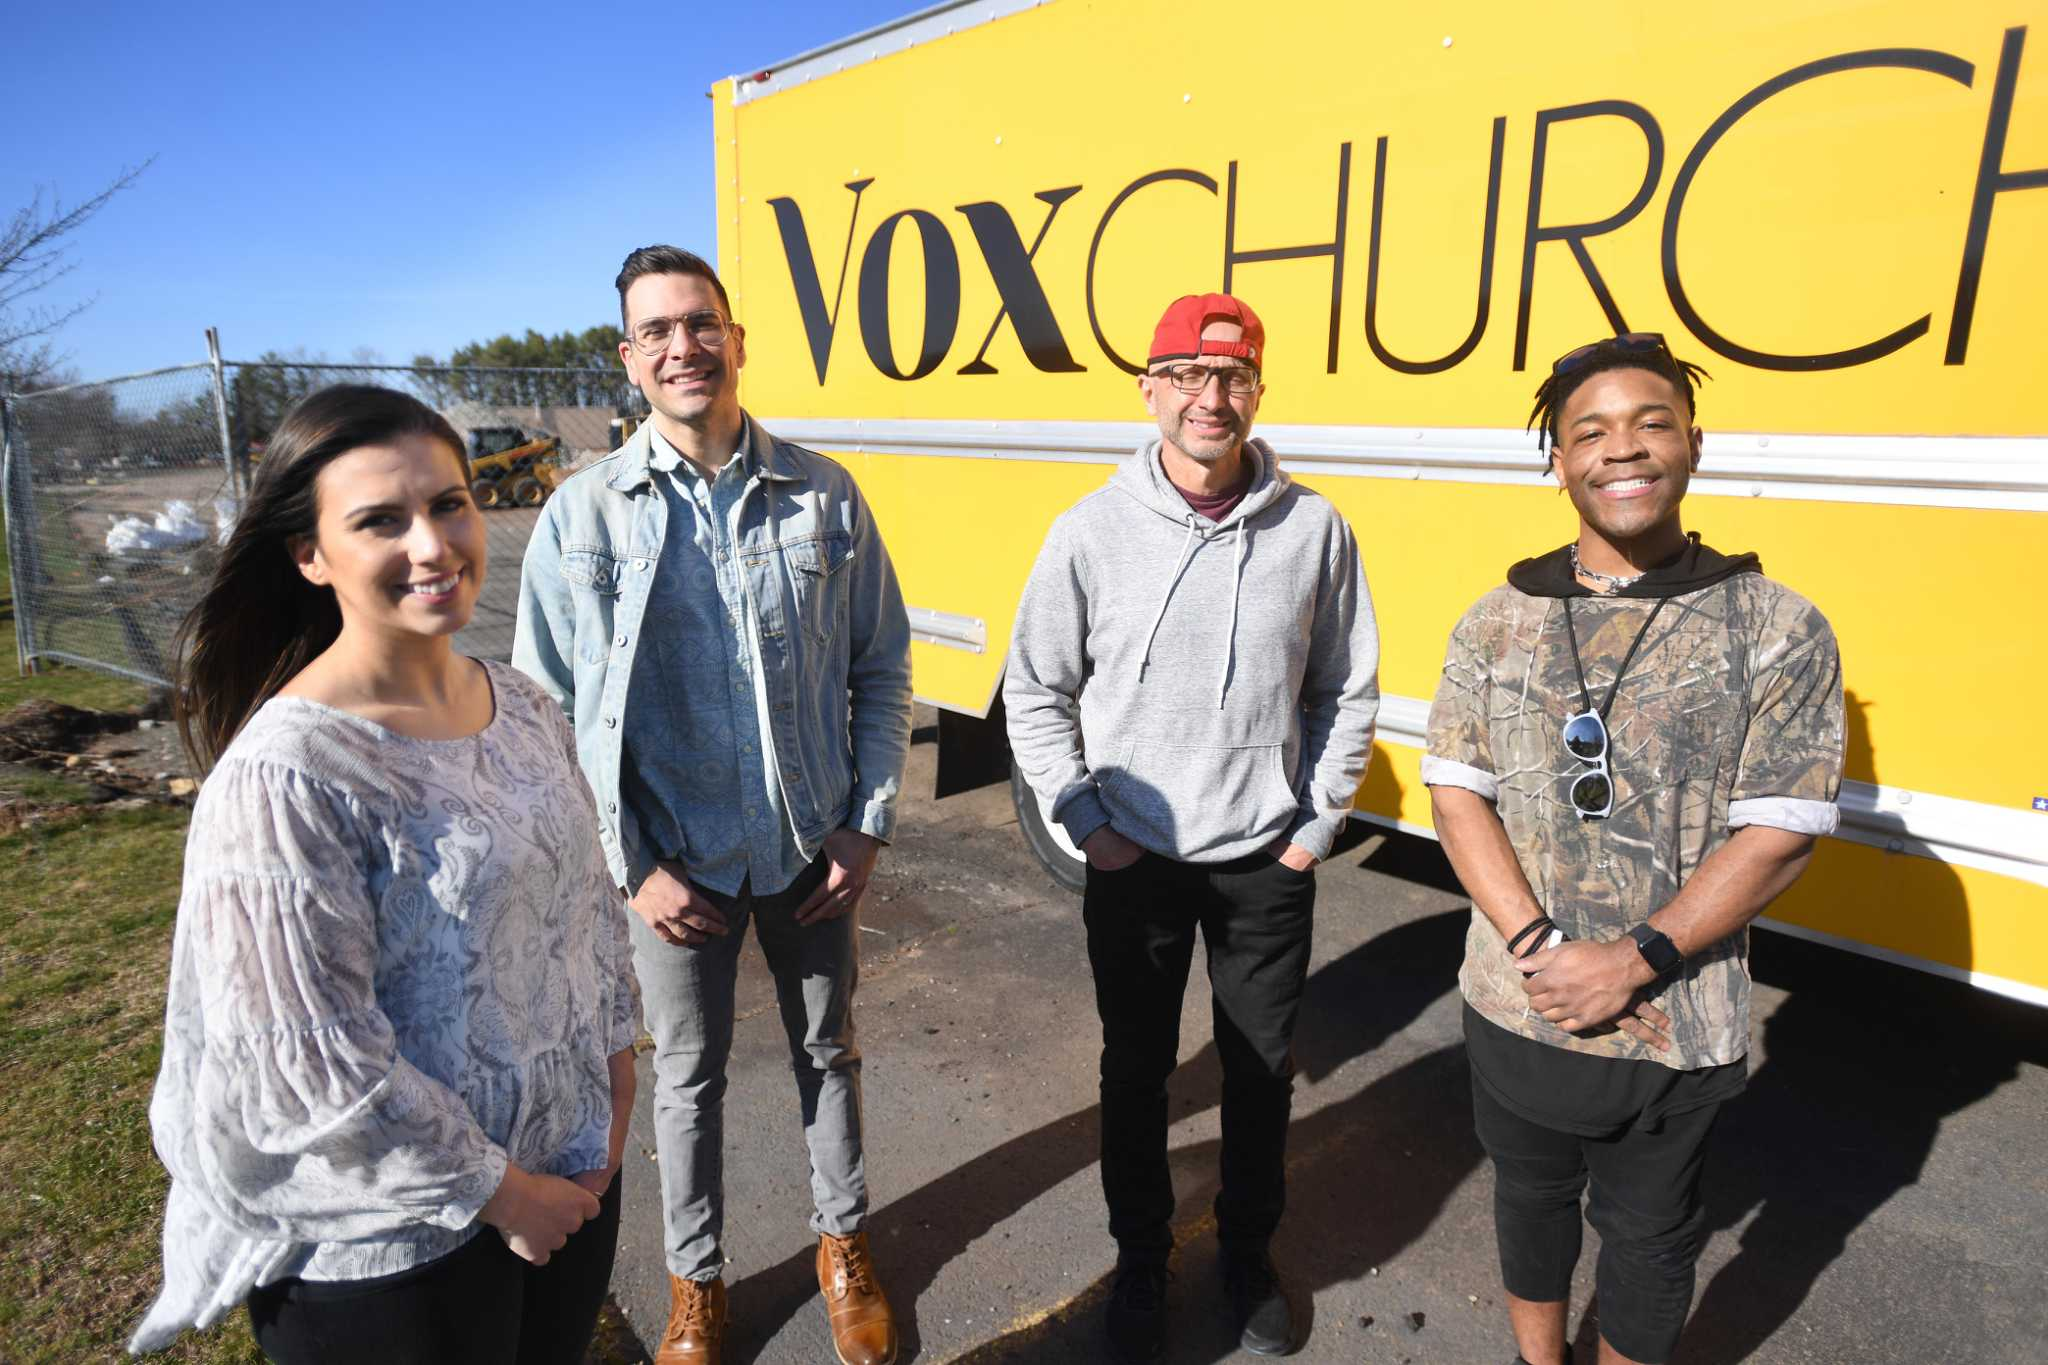 Vox Church will send its message from its new 27,000-square-foot 'anchor' home in Branford